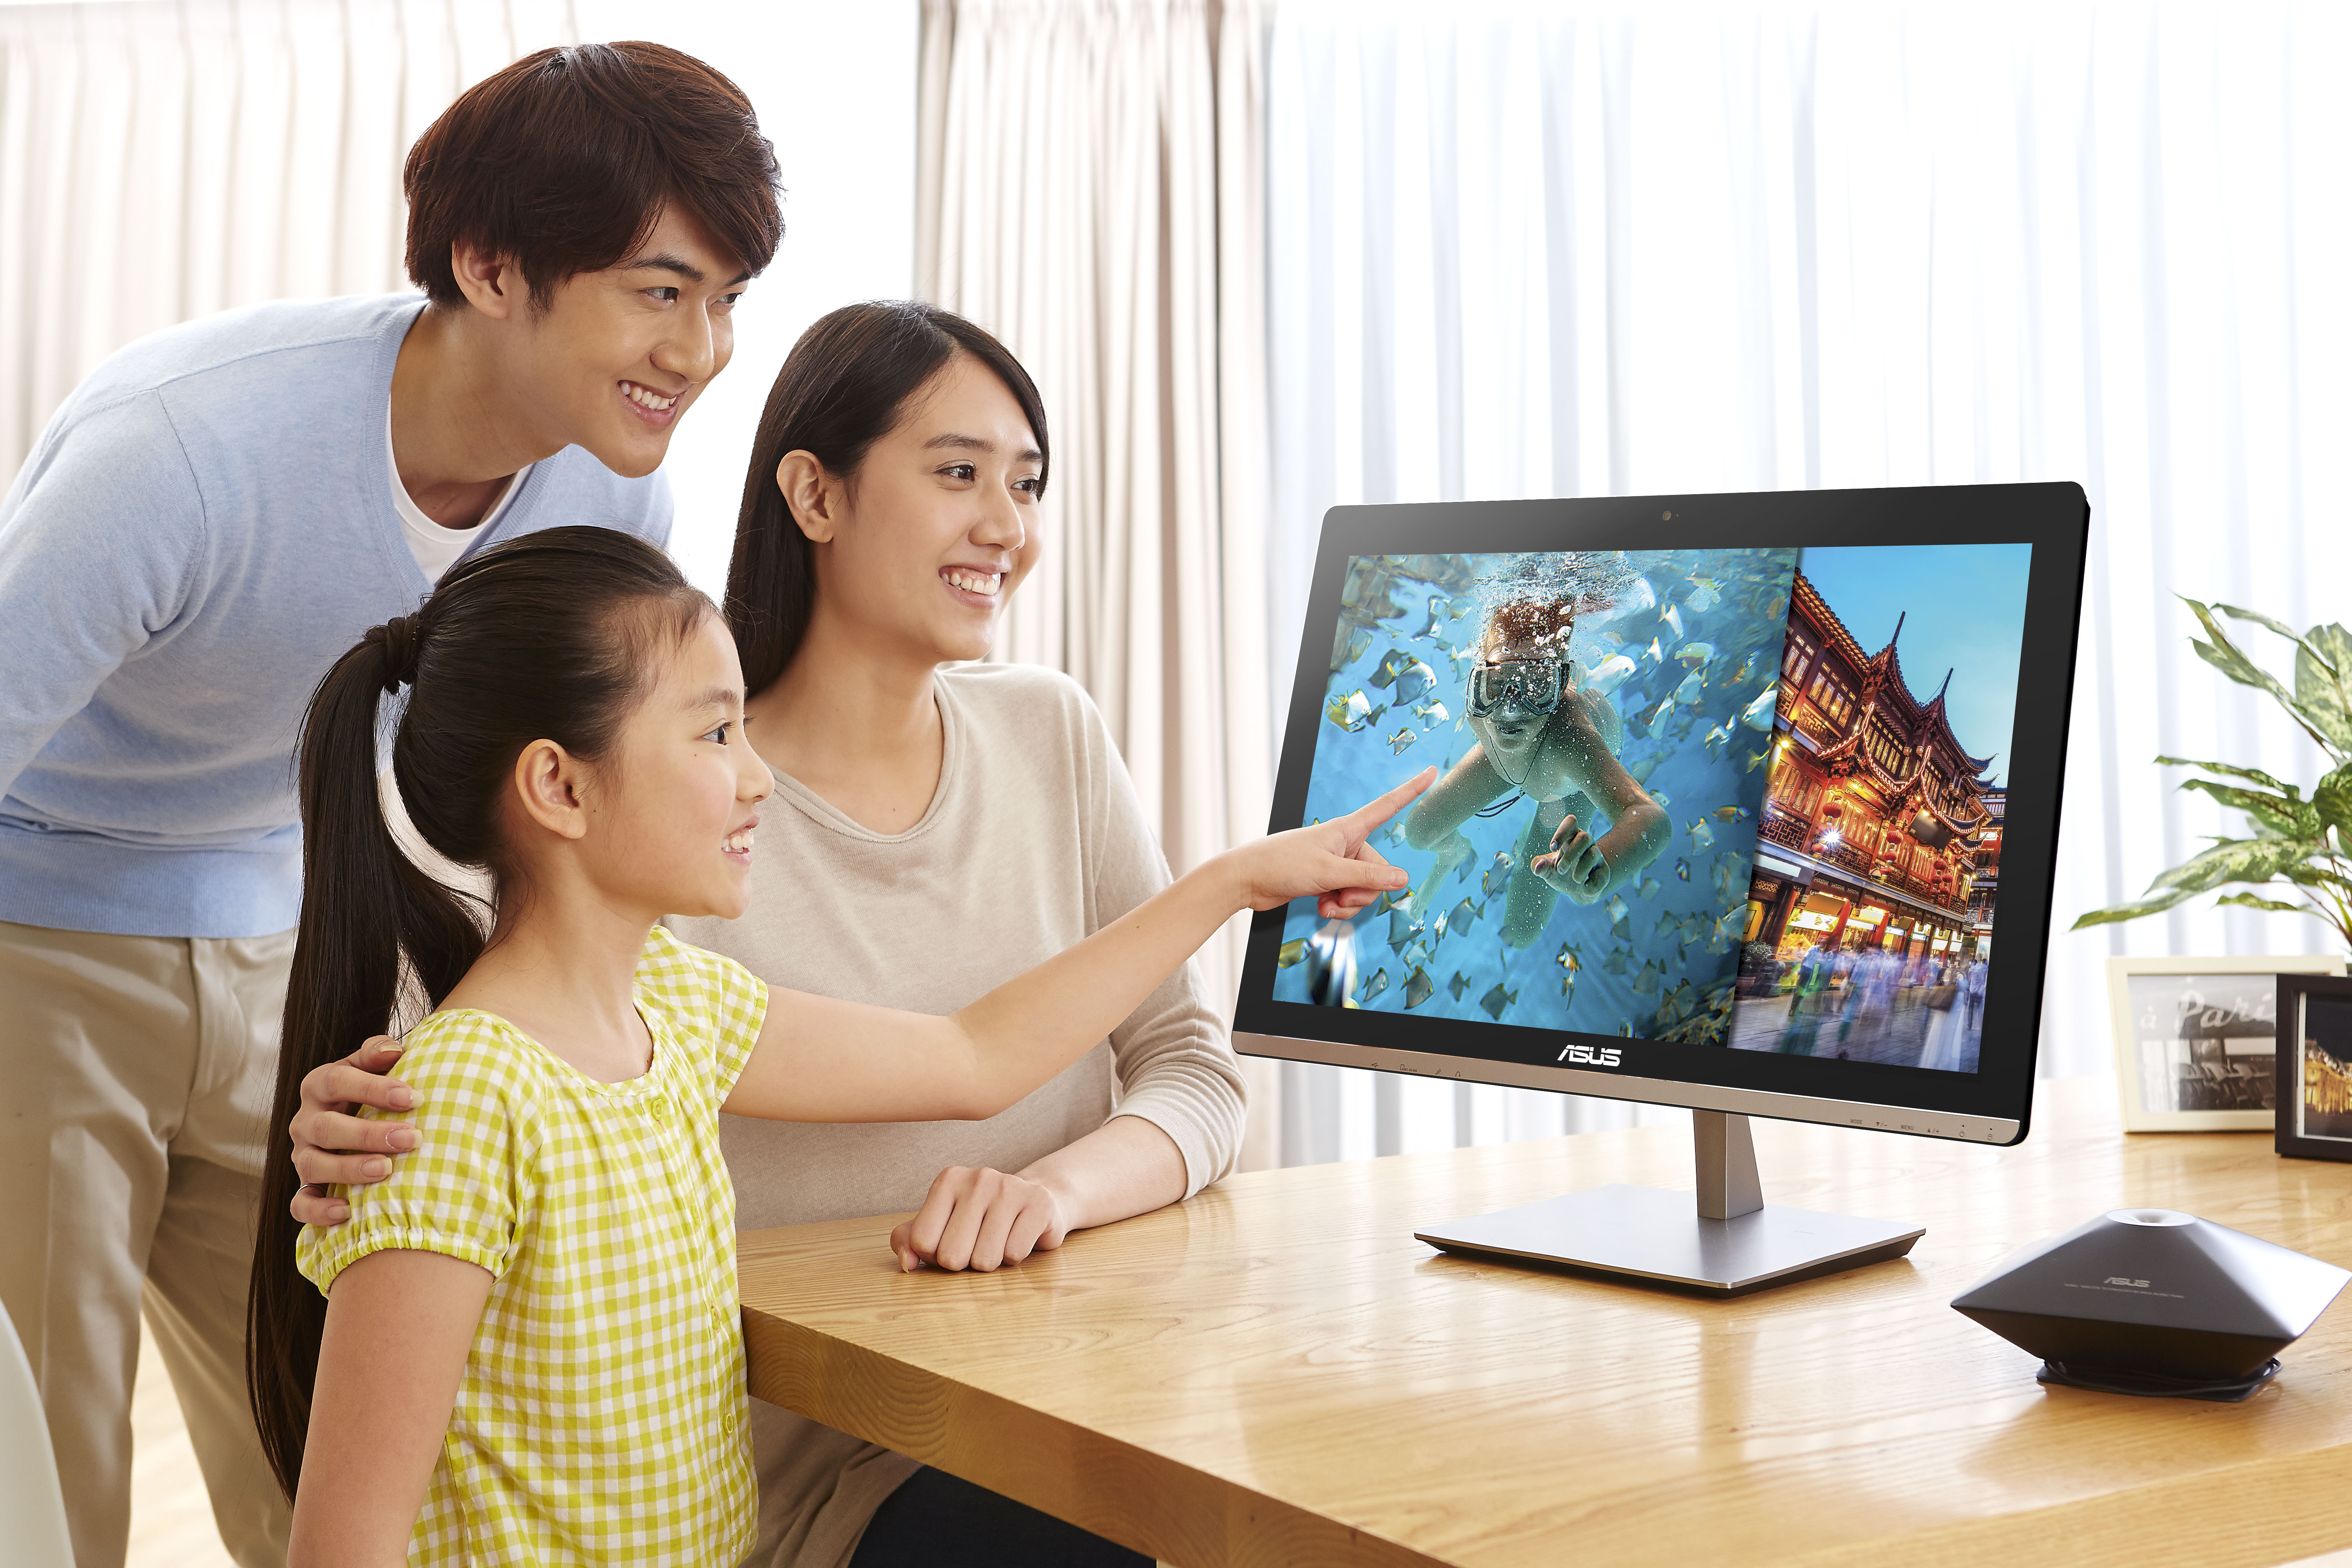 ASUS ET2321-Vibrant and vivid image with IPS and 10-point touch display